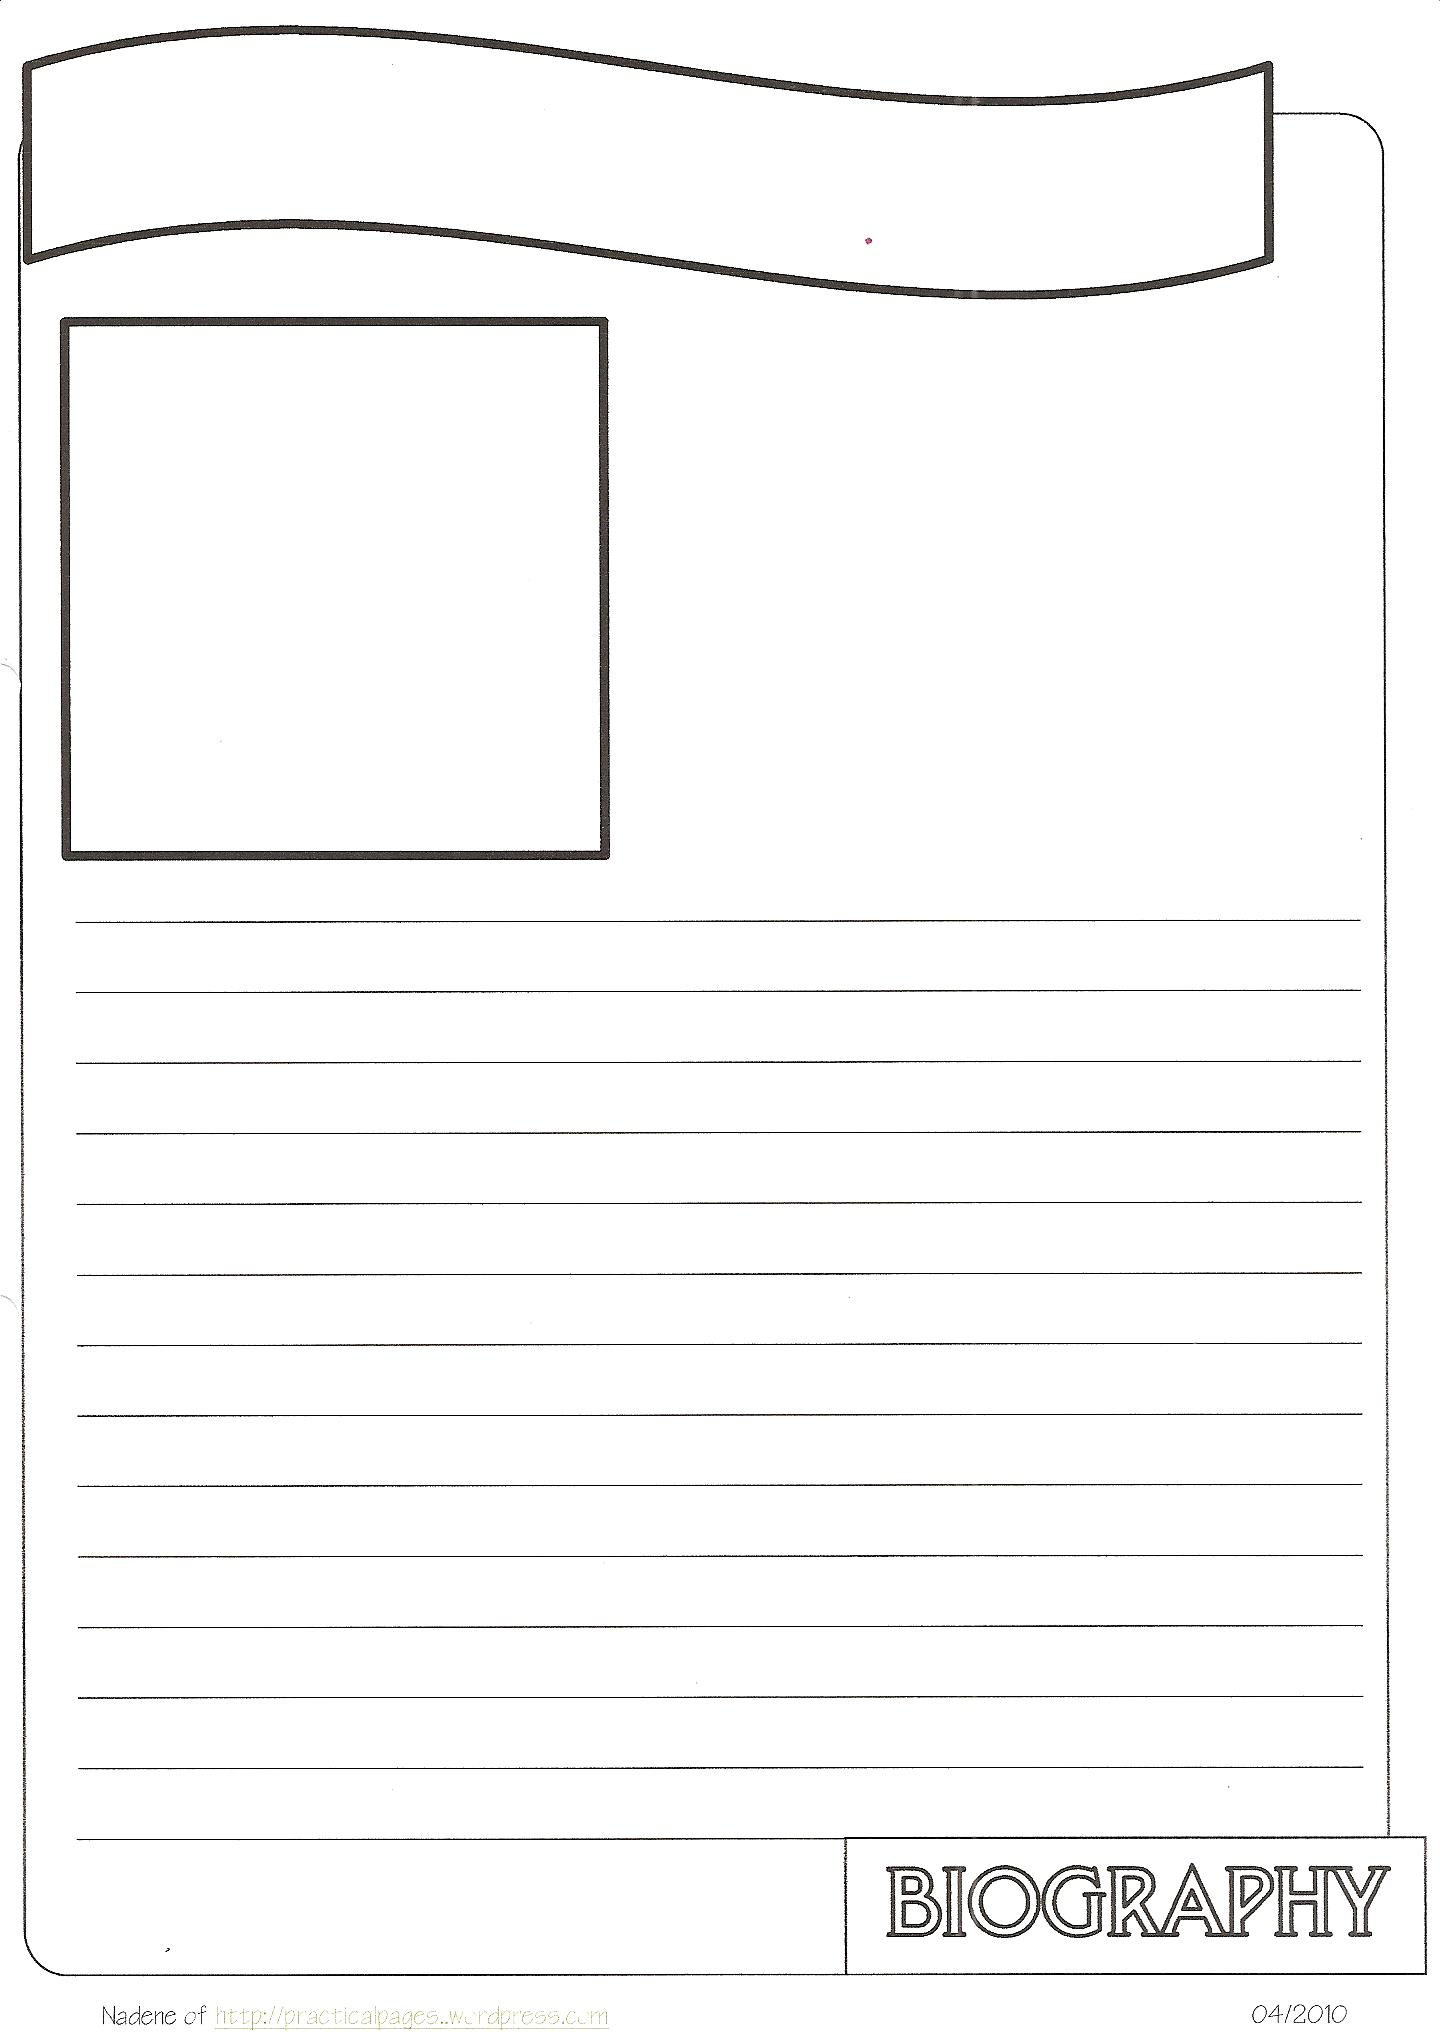 New Biography Notebook Page Templates | Practical Pages